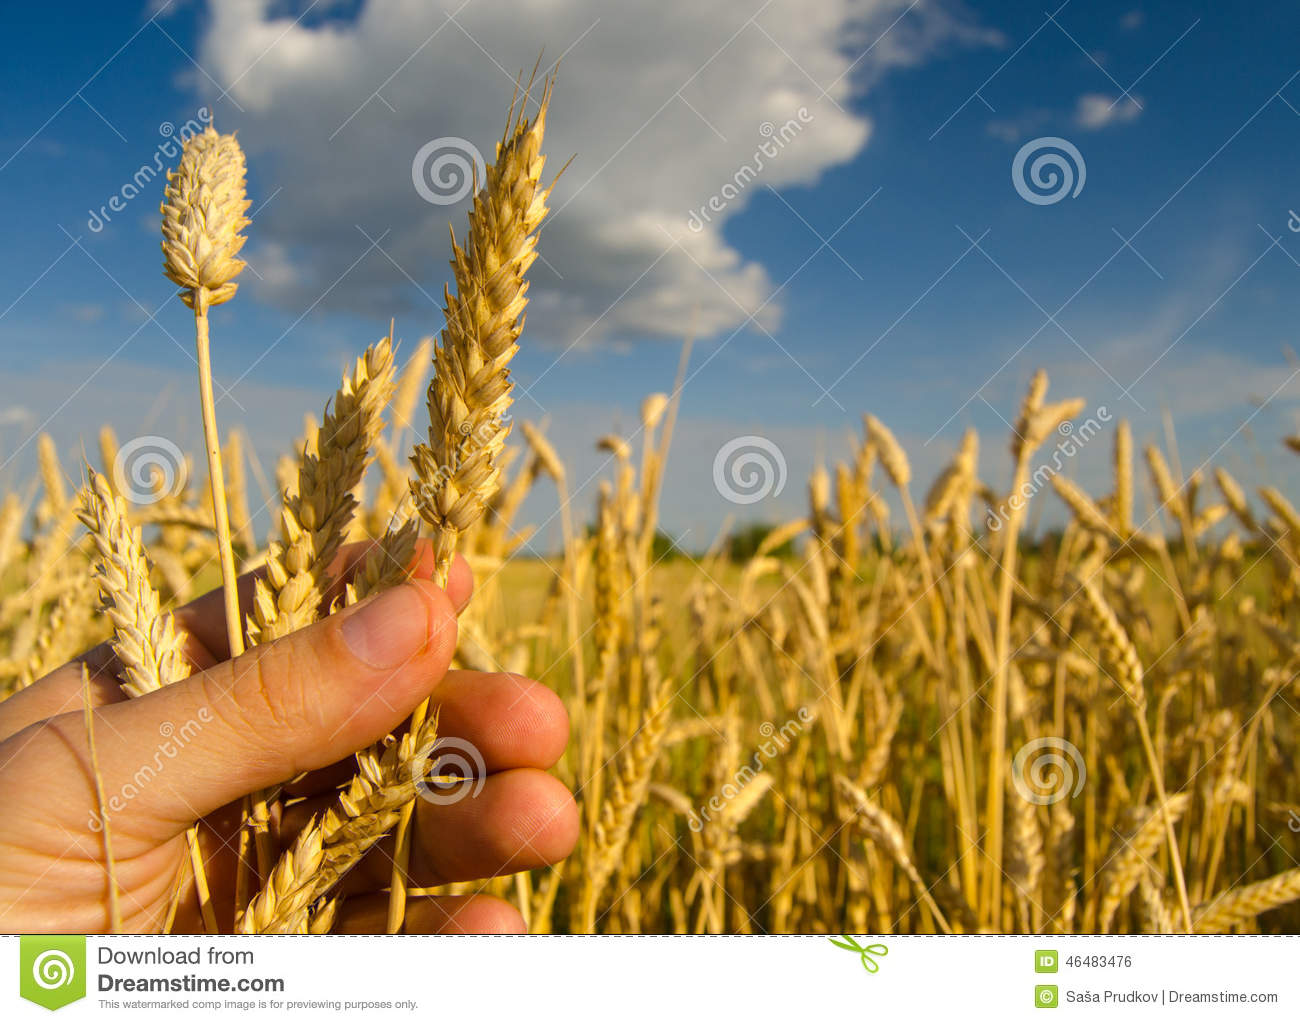 Farmers hand holding one stem of ripe wheat seeds